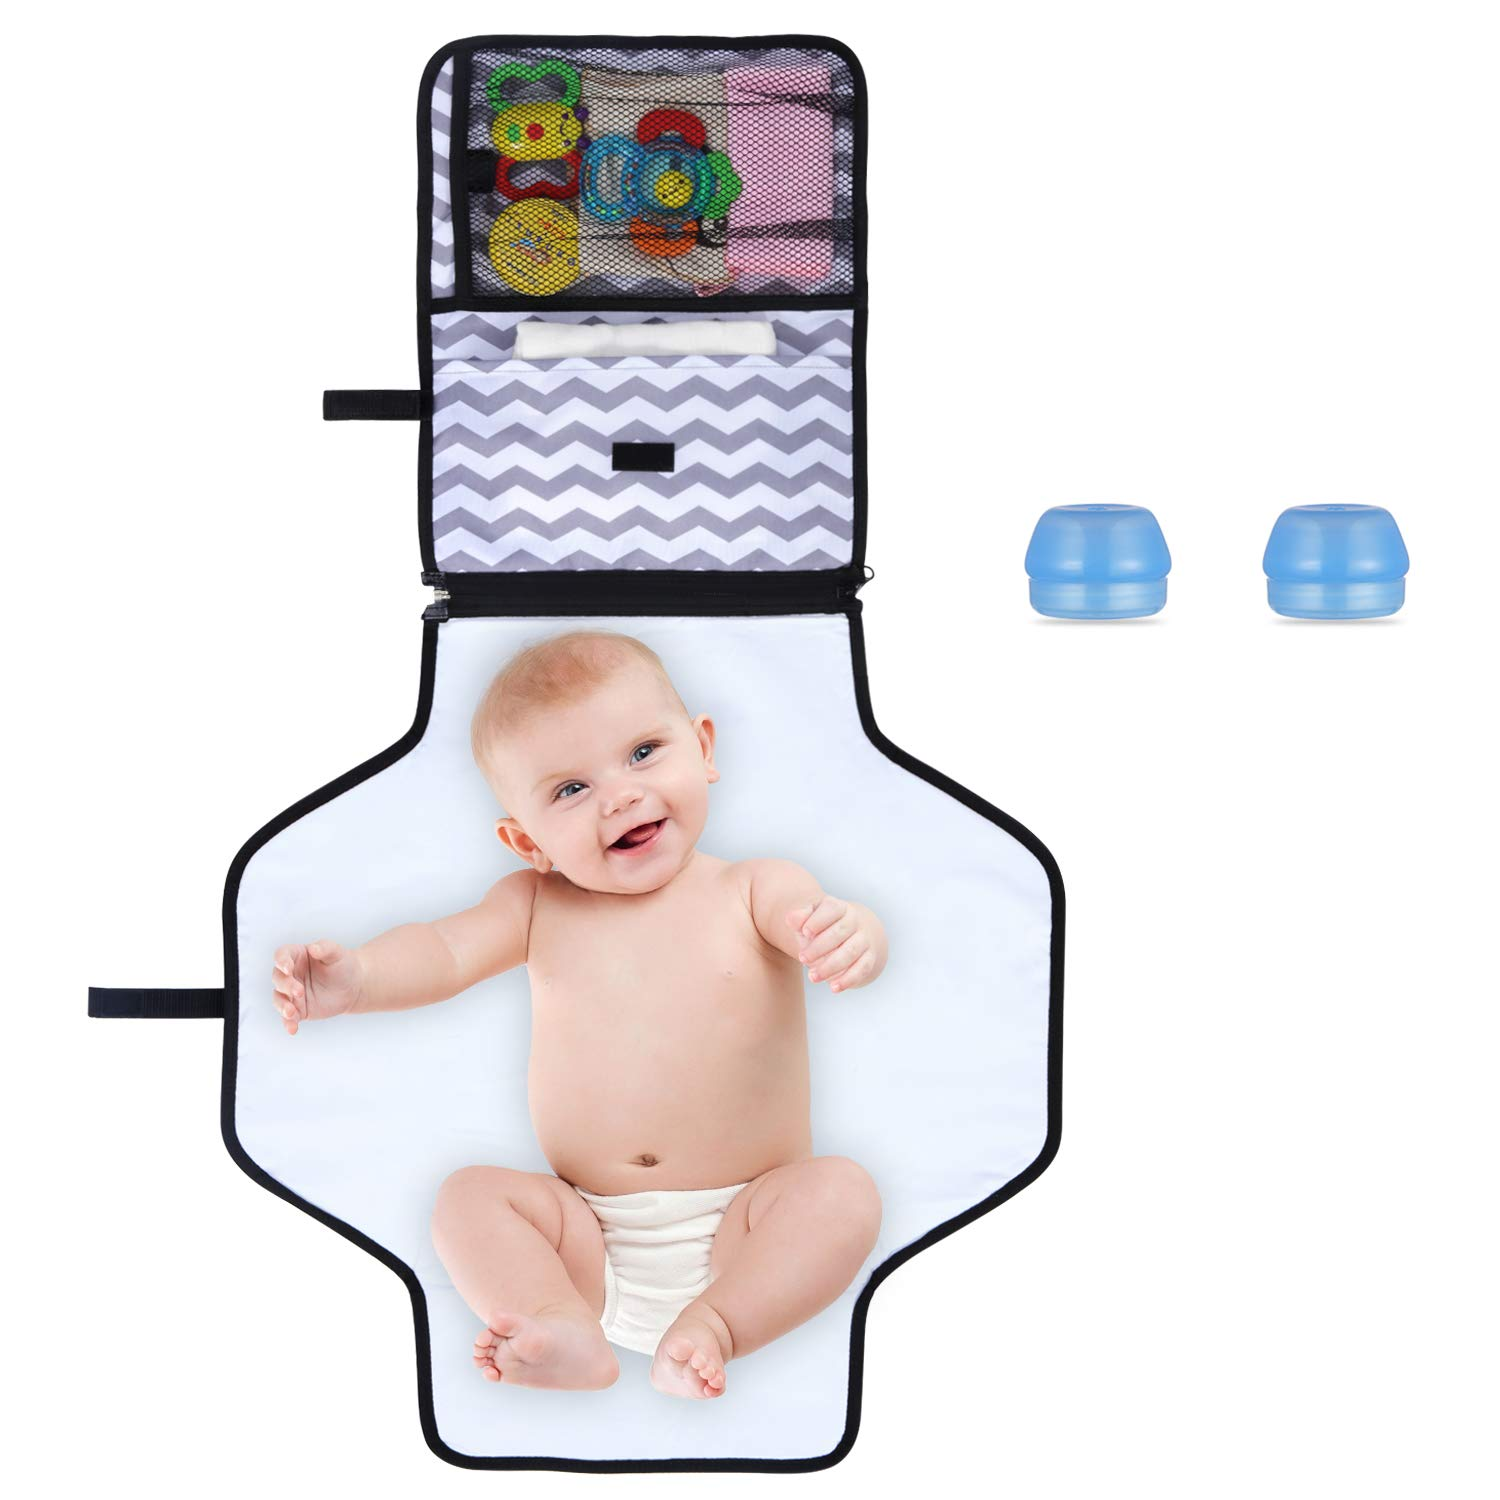 Waterproof Diaper Changing Pad Portable Nappy Changing Mat Best Gift for Mom of Newborn Boys Girls Foldable Infant Urinal Pad Baby Changing Kit for Home Travel Outside Gray Stripe